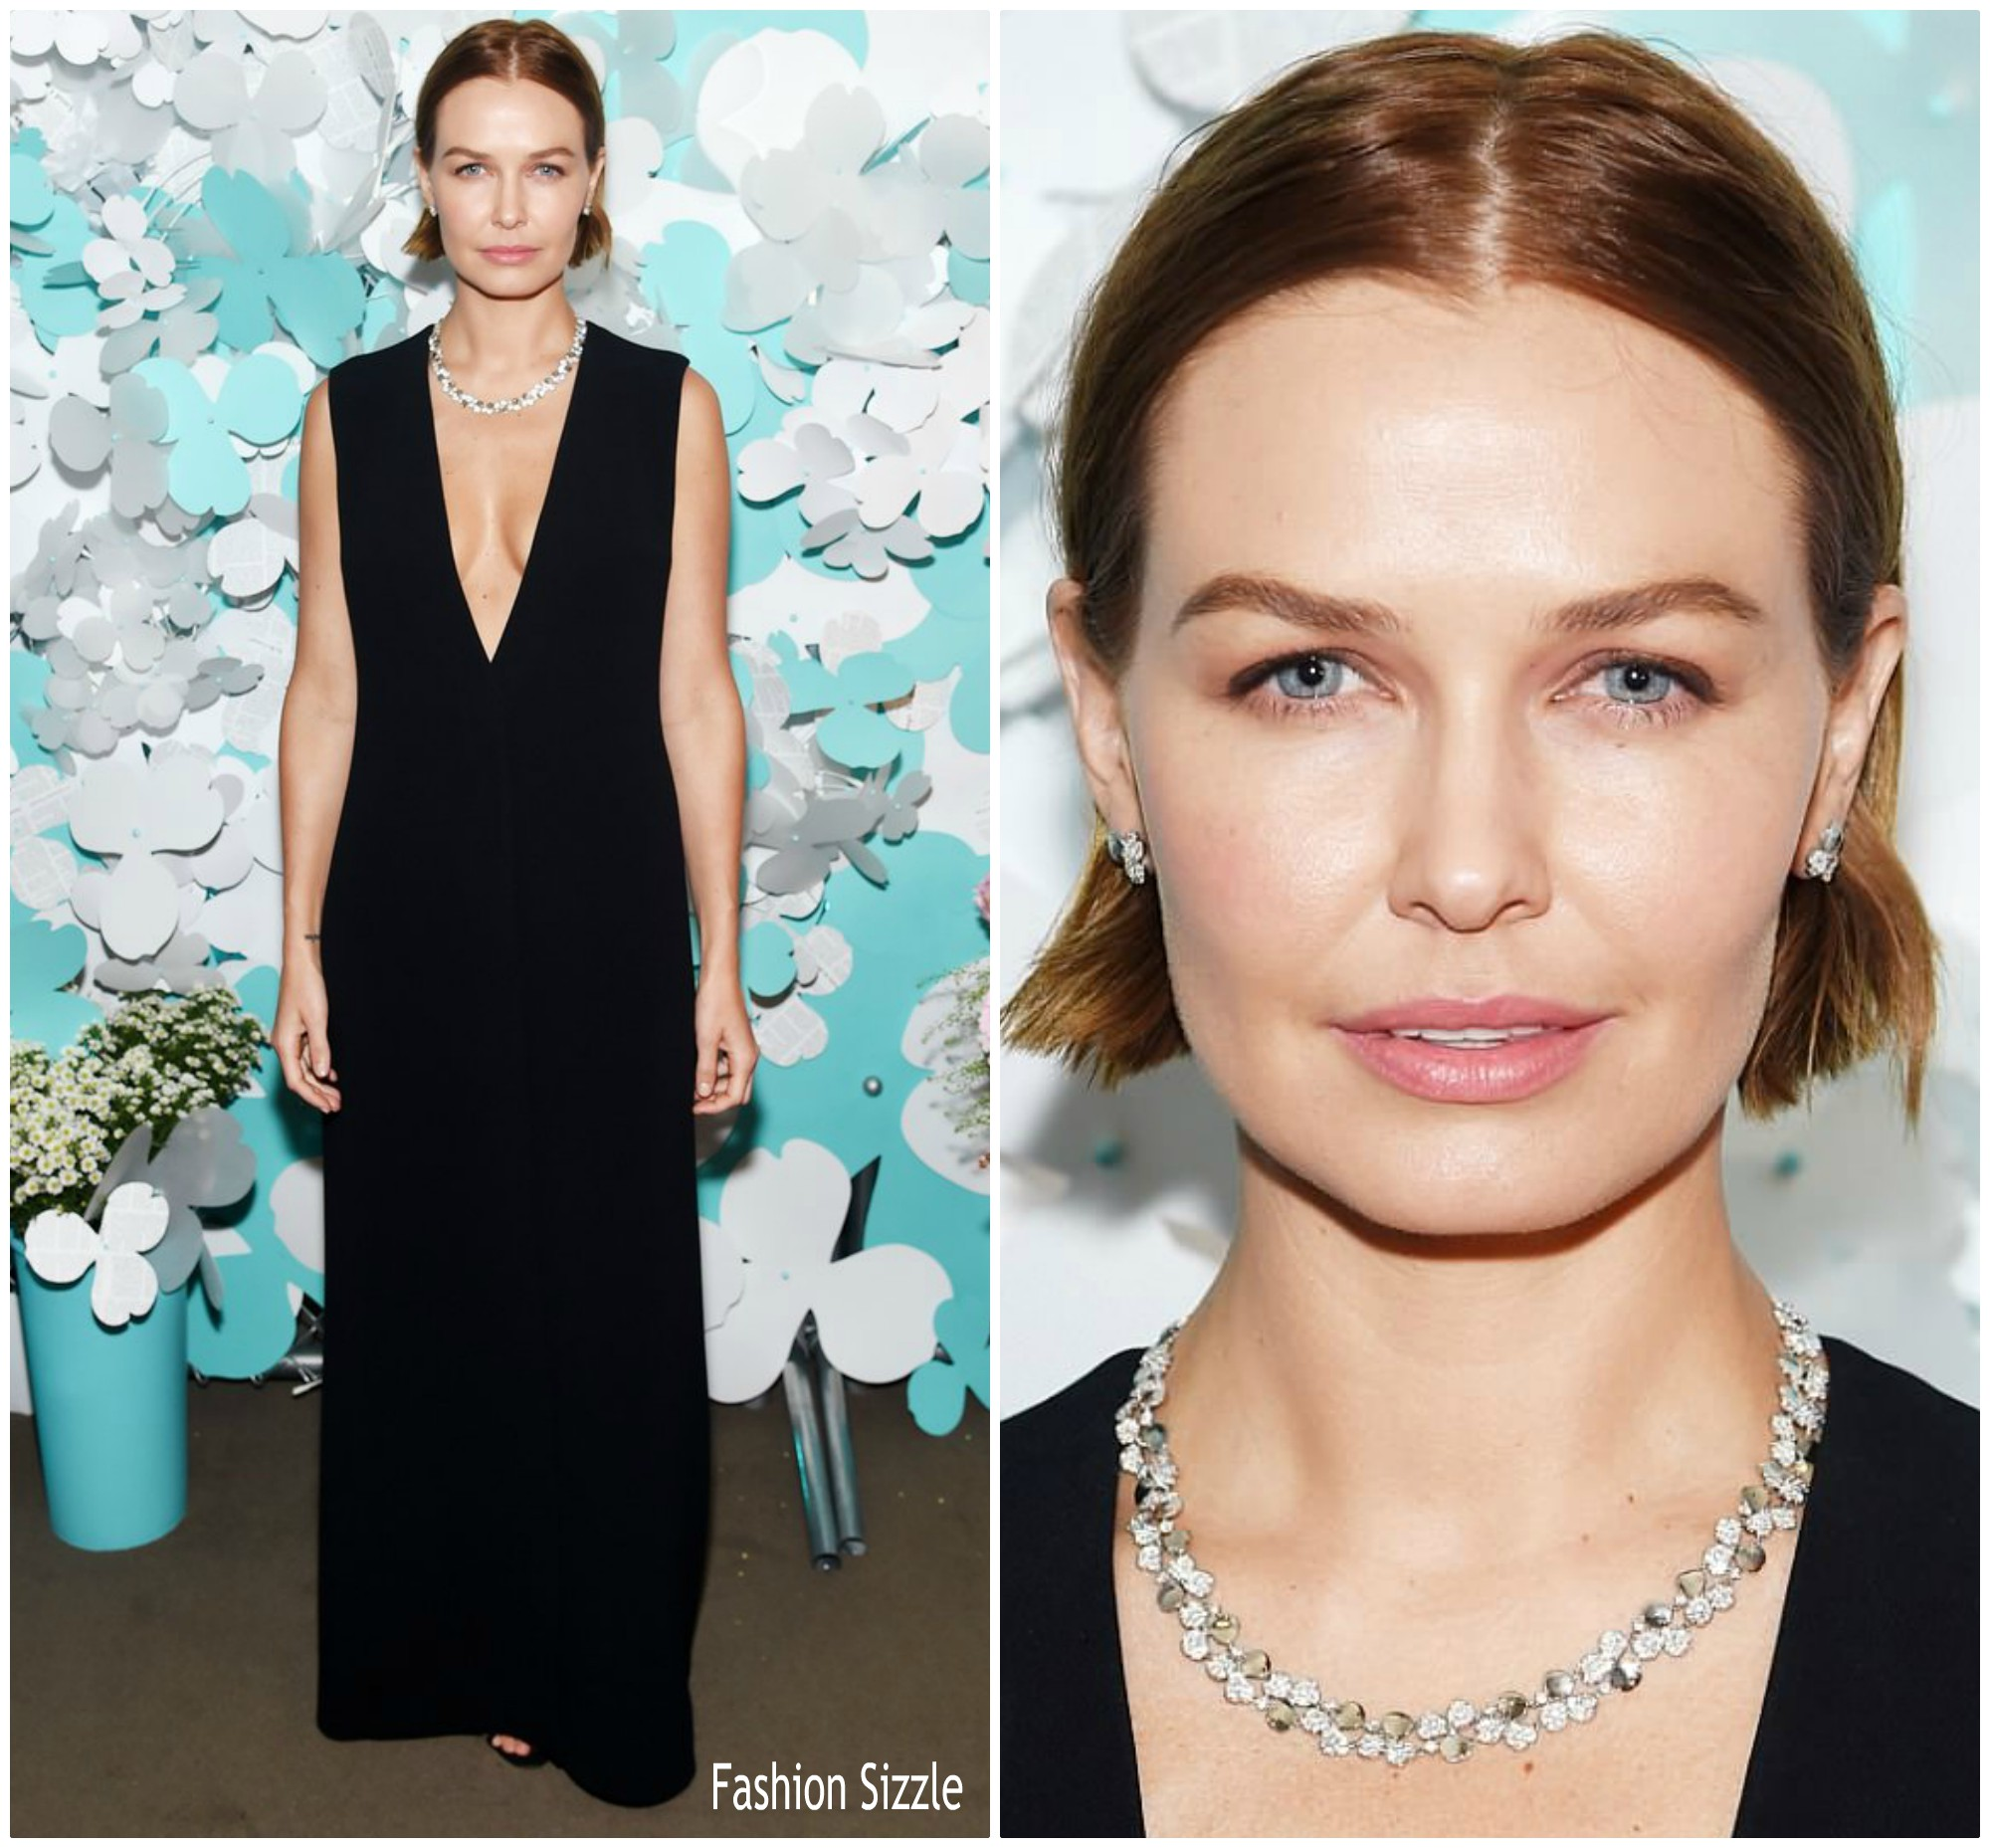 lara-bingle-in-the-row-tiffany-co-paper-flowers-event-and-believe-in-dreams-campaign-launch